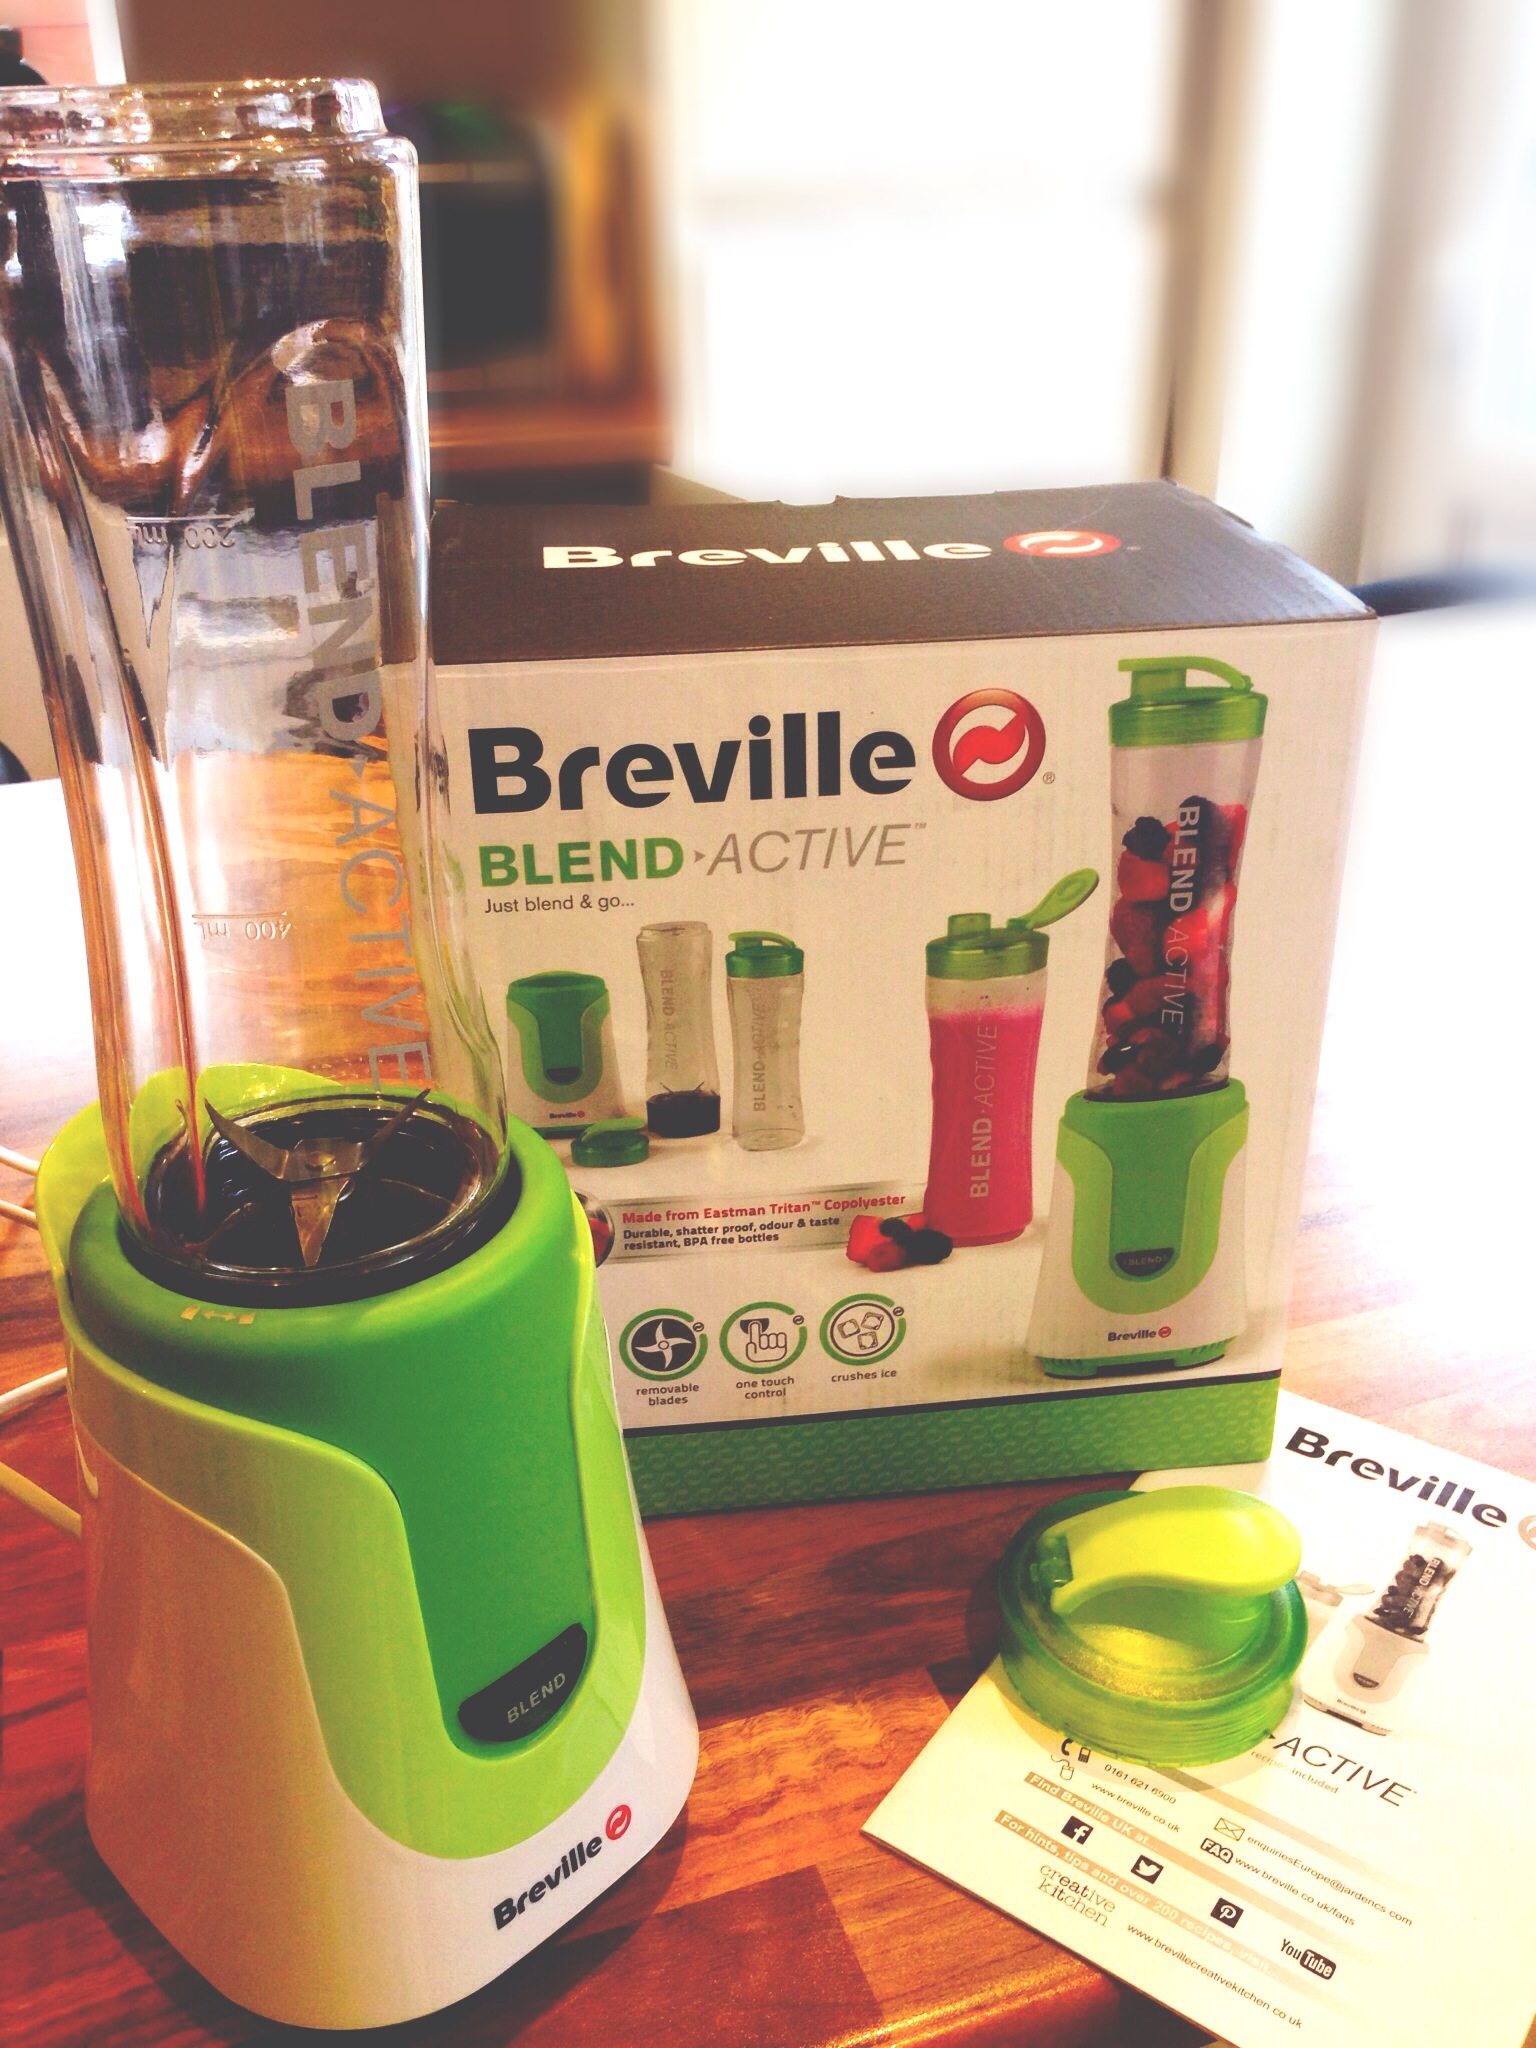 Breville VBL062 Blend-Active - Green | Home | George